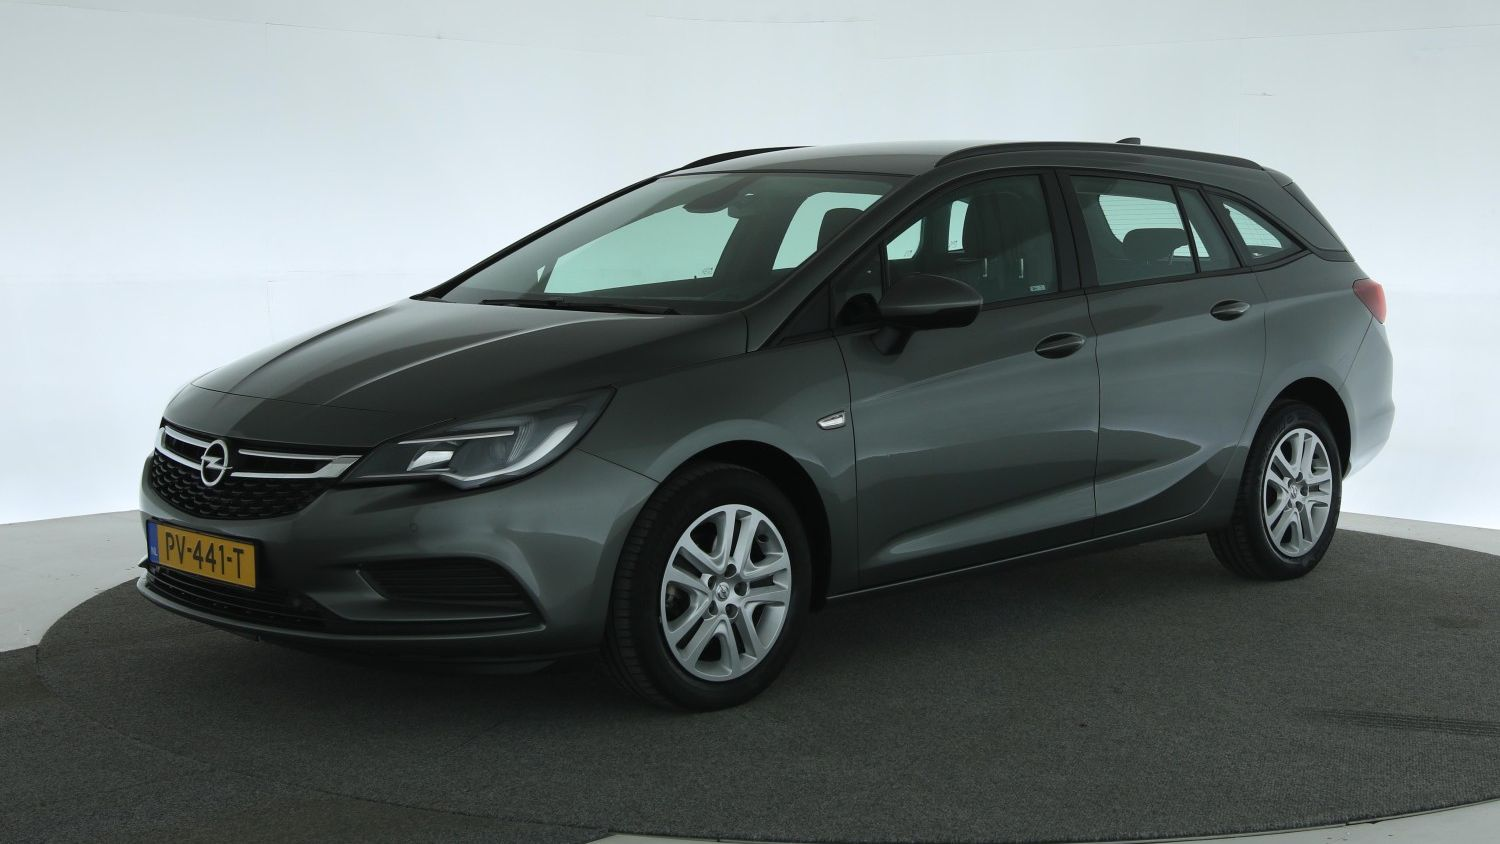 Opel Astra Station 2017 PV-441-T 1